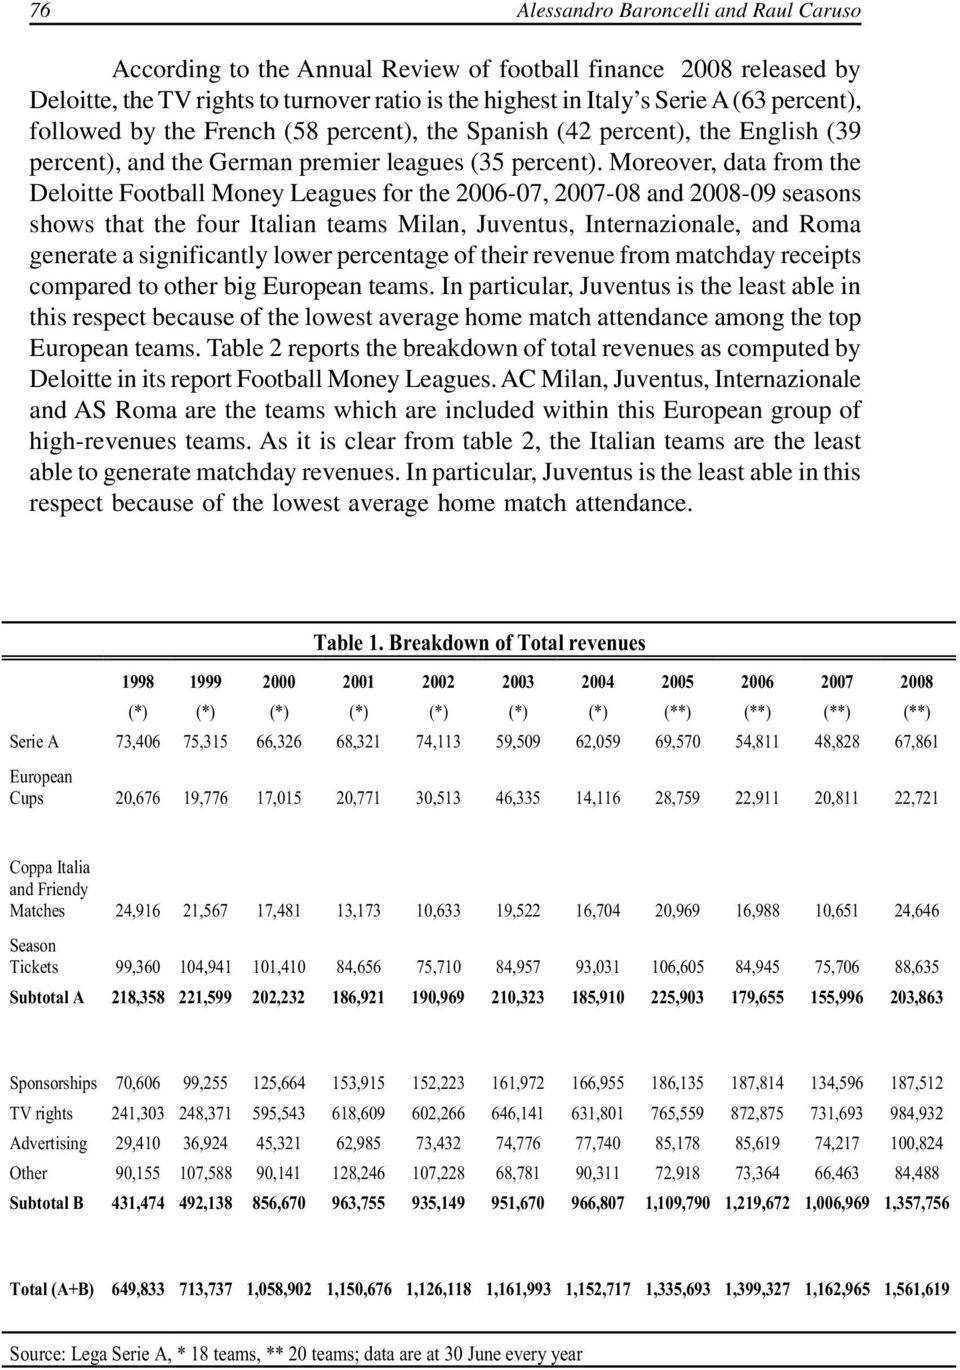 Moreover, data from the Deloitte Football Money Leagues for the 2006-07, 2007-08 and 2008-09 seasons shows that the four Italian teams Milan, Juventus, Internazionale, and Roma generate a